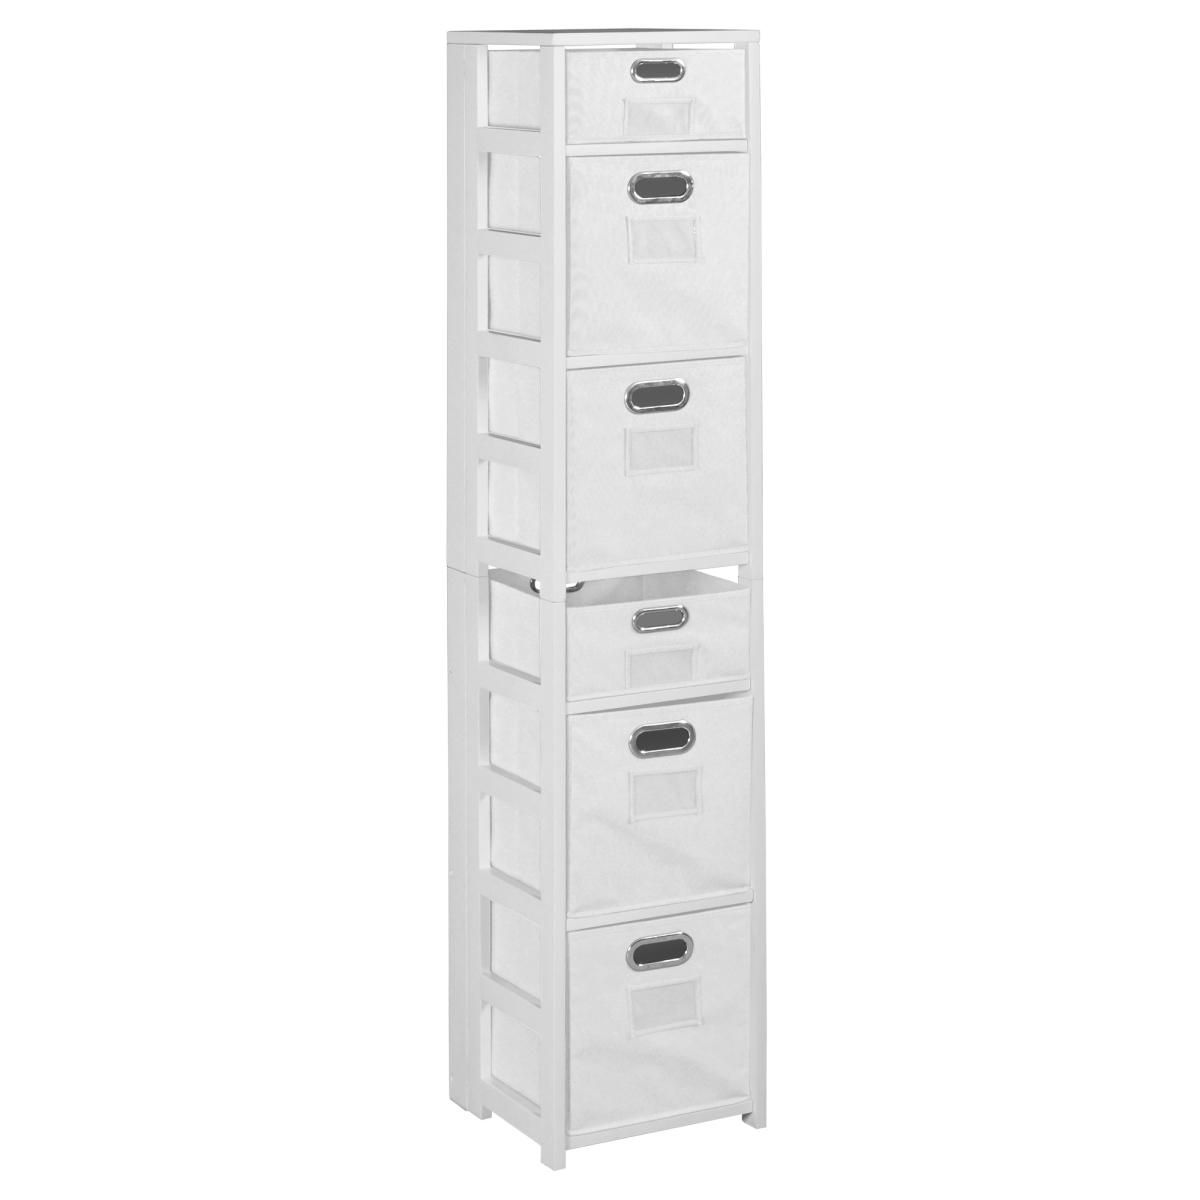 Regency & Niche FFSQ6712WHWH 67 in. Flip Flop Square Folding Bookcase with Folding Fabric Bins- White & White